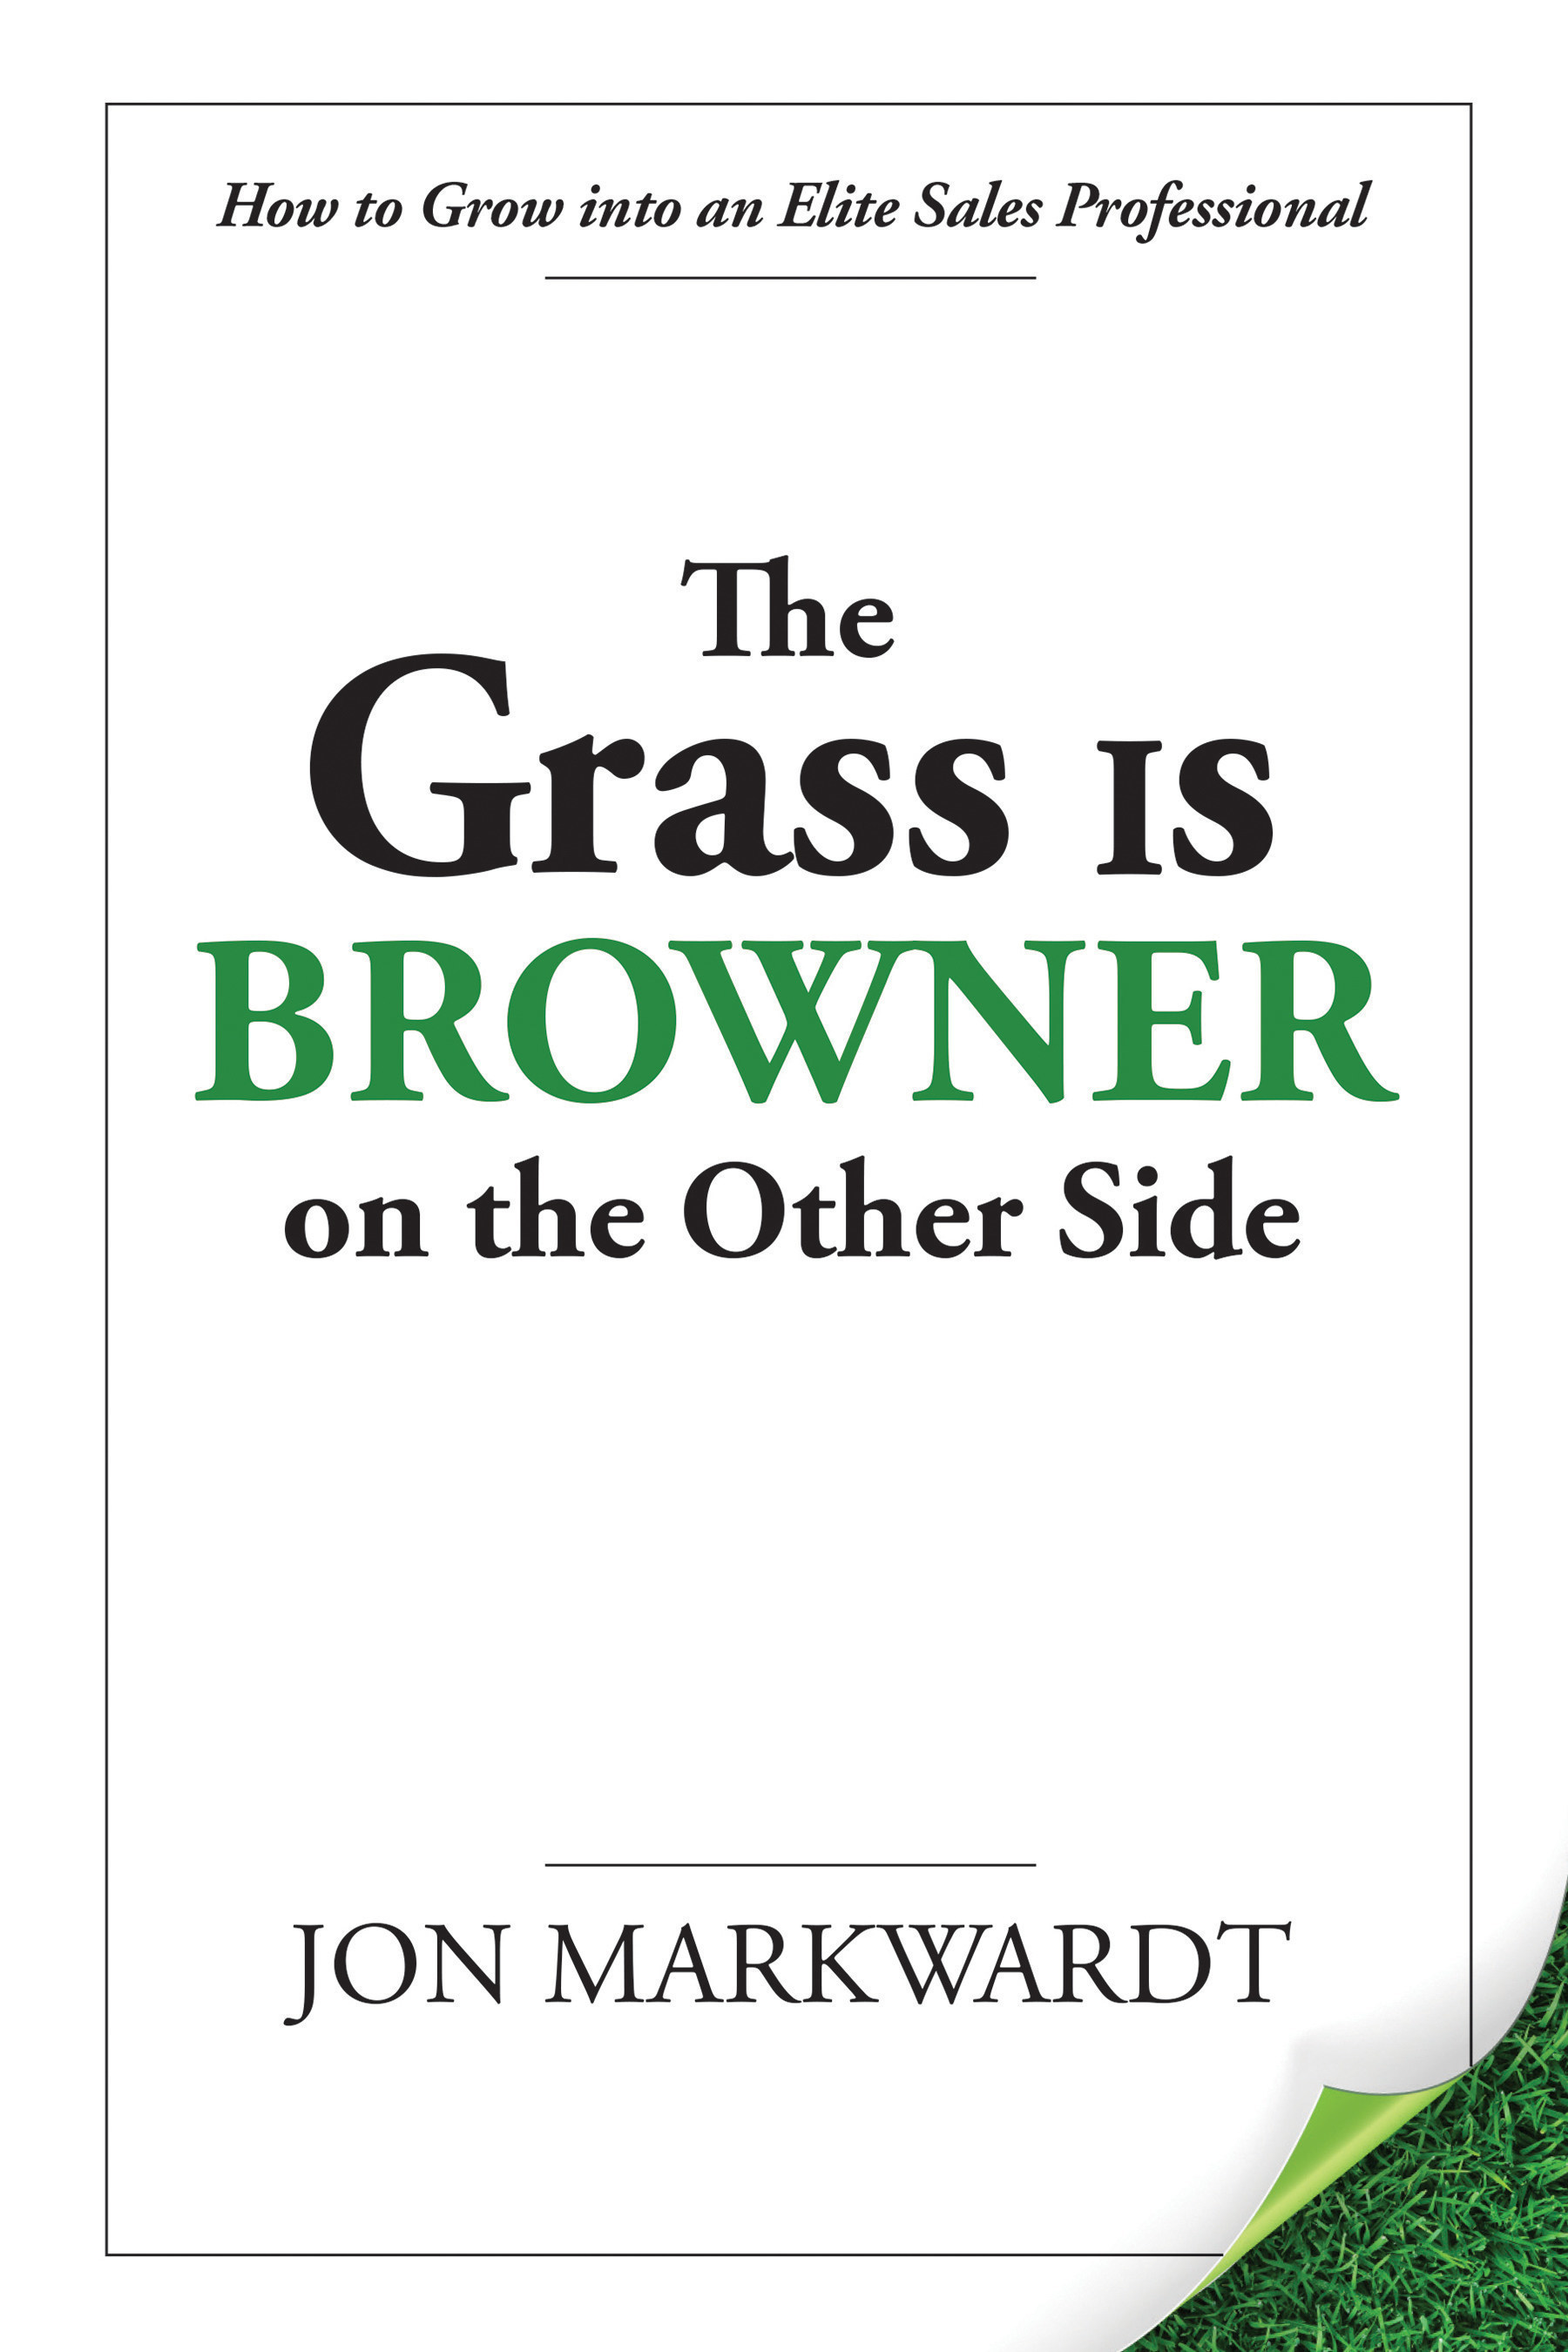 The Grass Is Browner on the Other Side: How to Grow into an Elite Sales Professional by Jon Markwardt